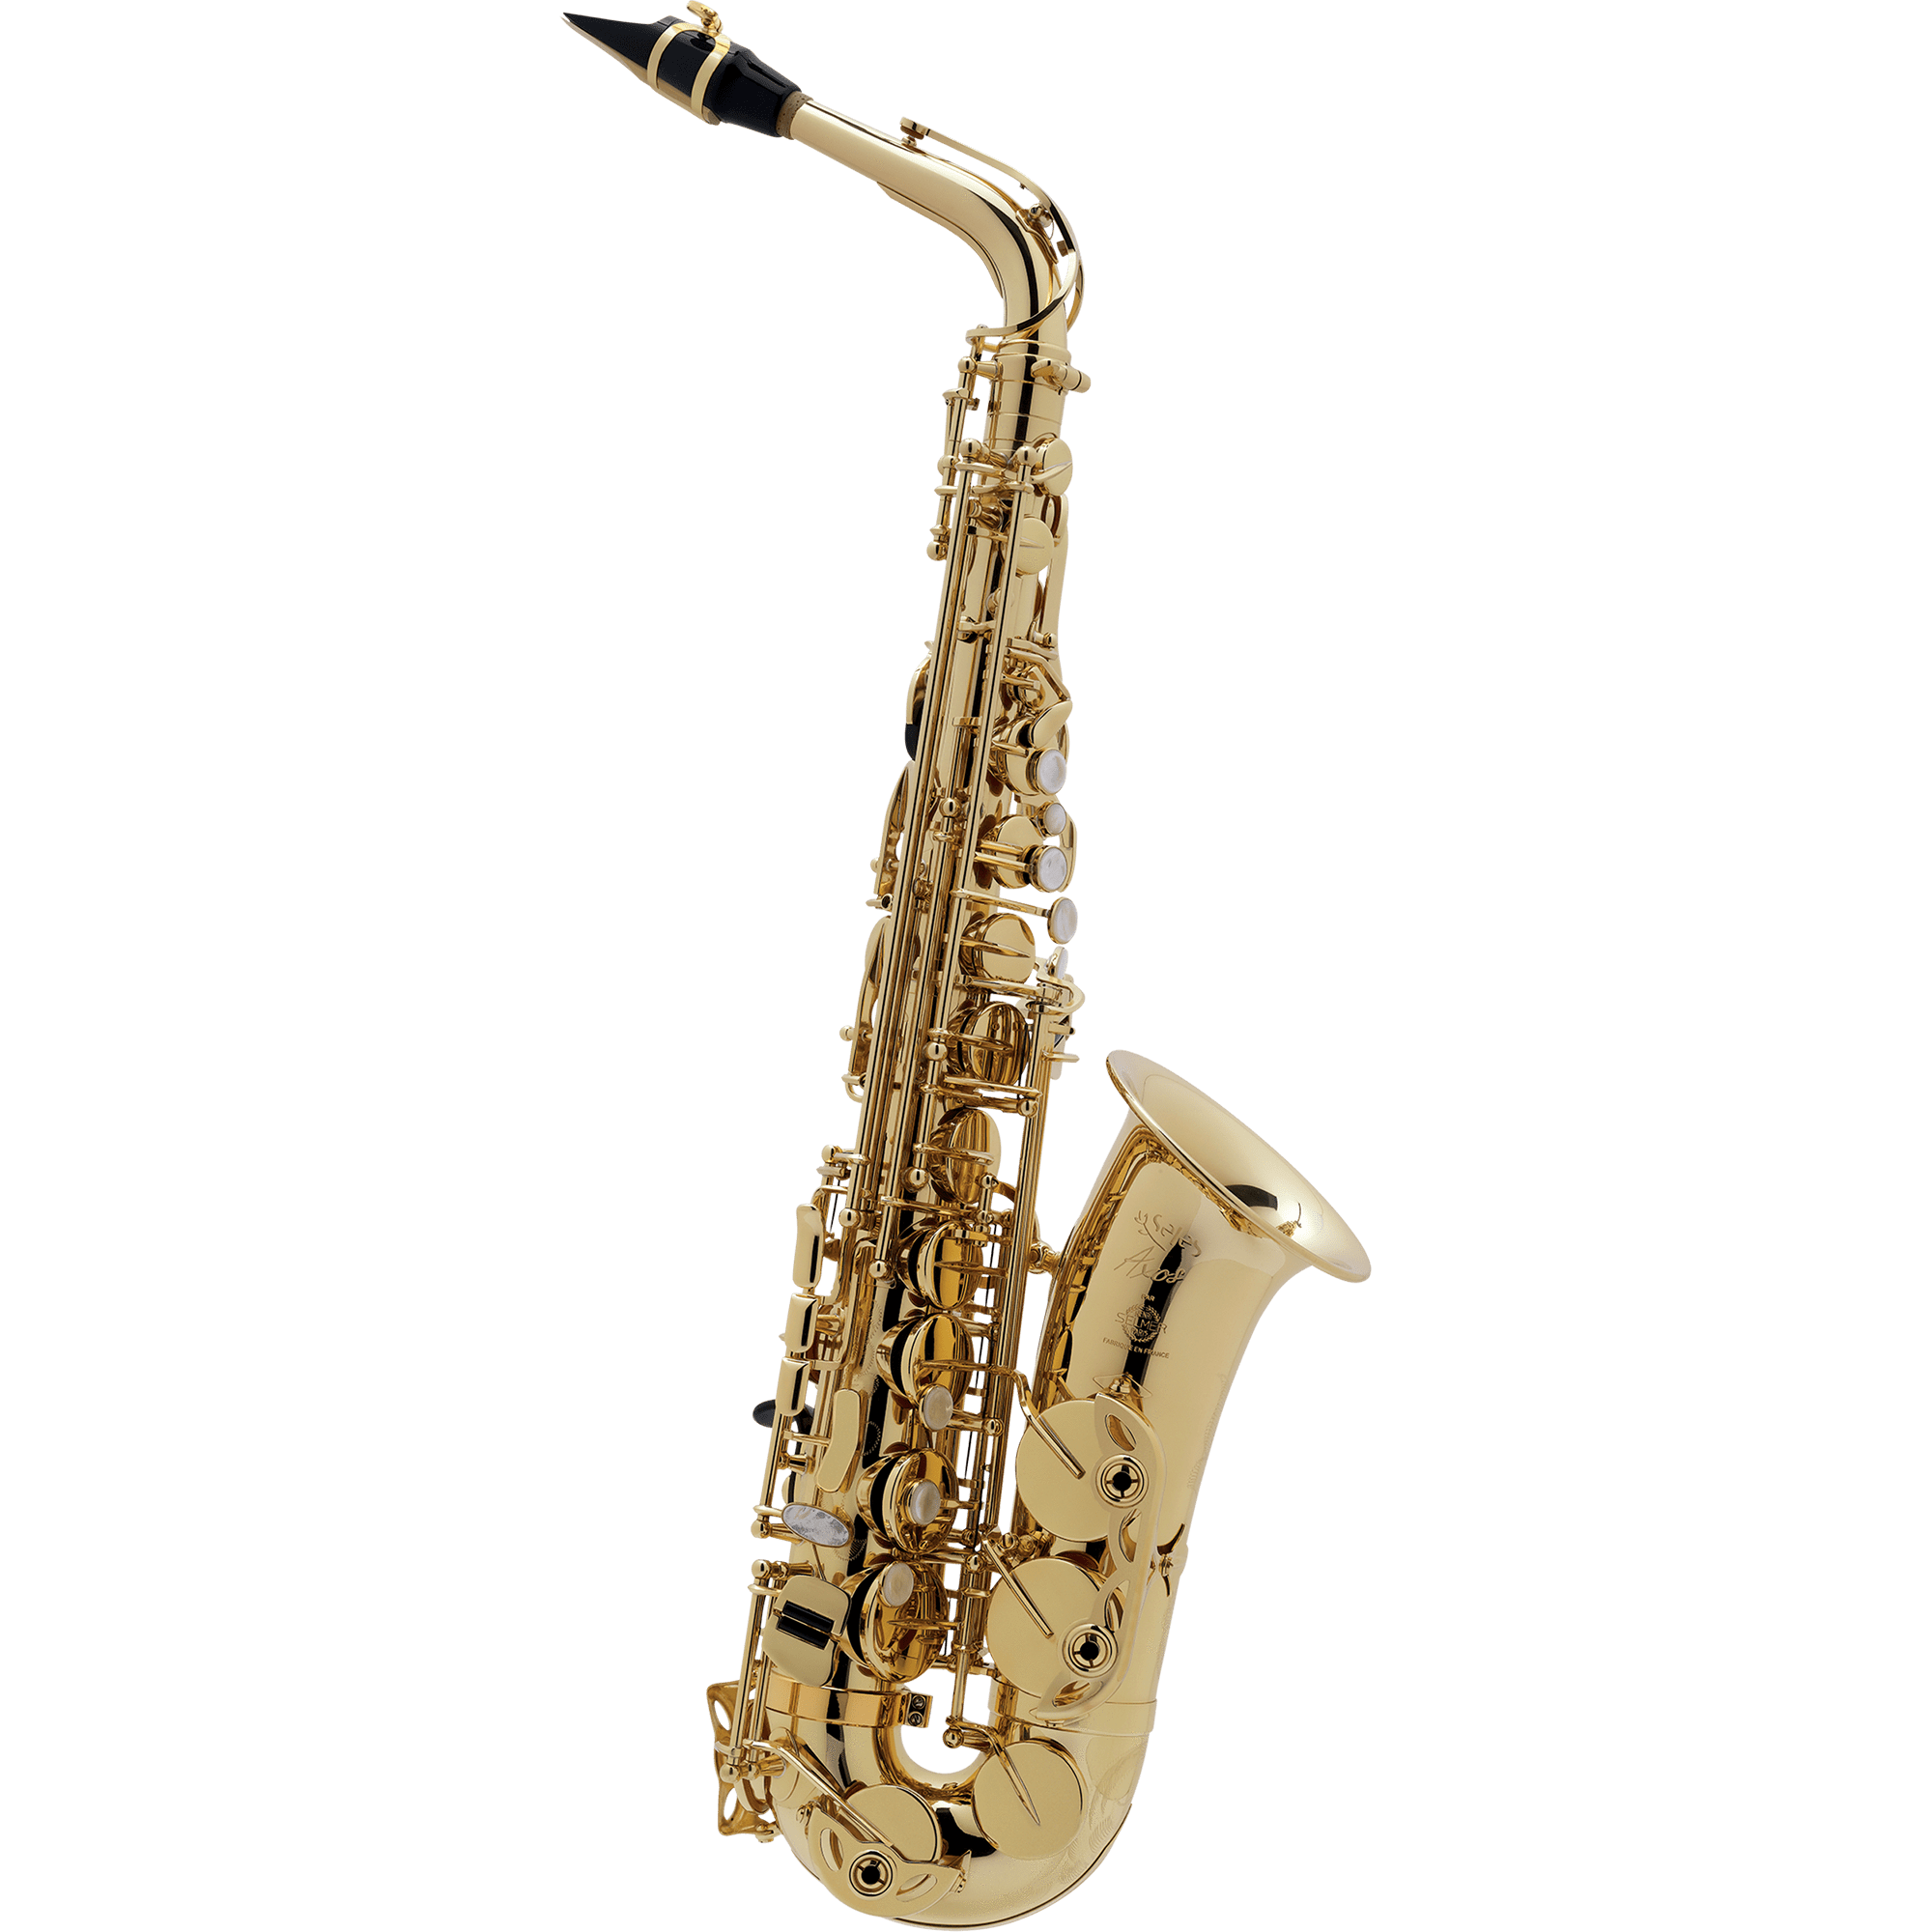 Selmer Paris SeleS - Axos Alto Saxophone-Saxophone-Selmer Paris-Music Elements